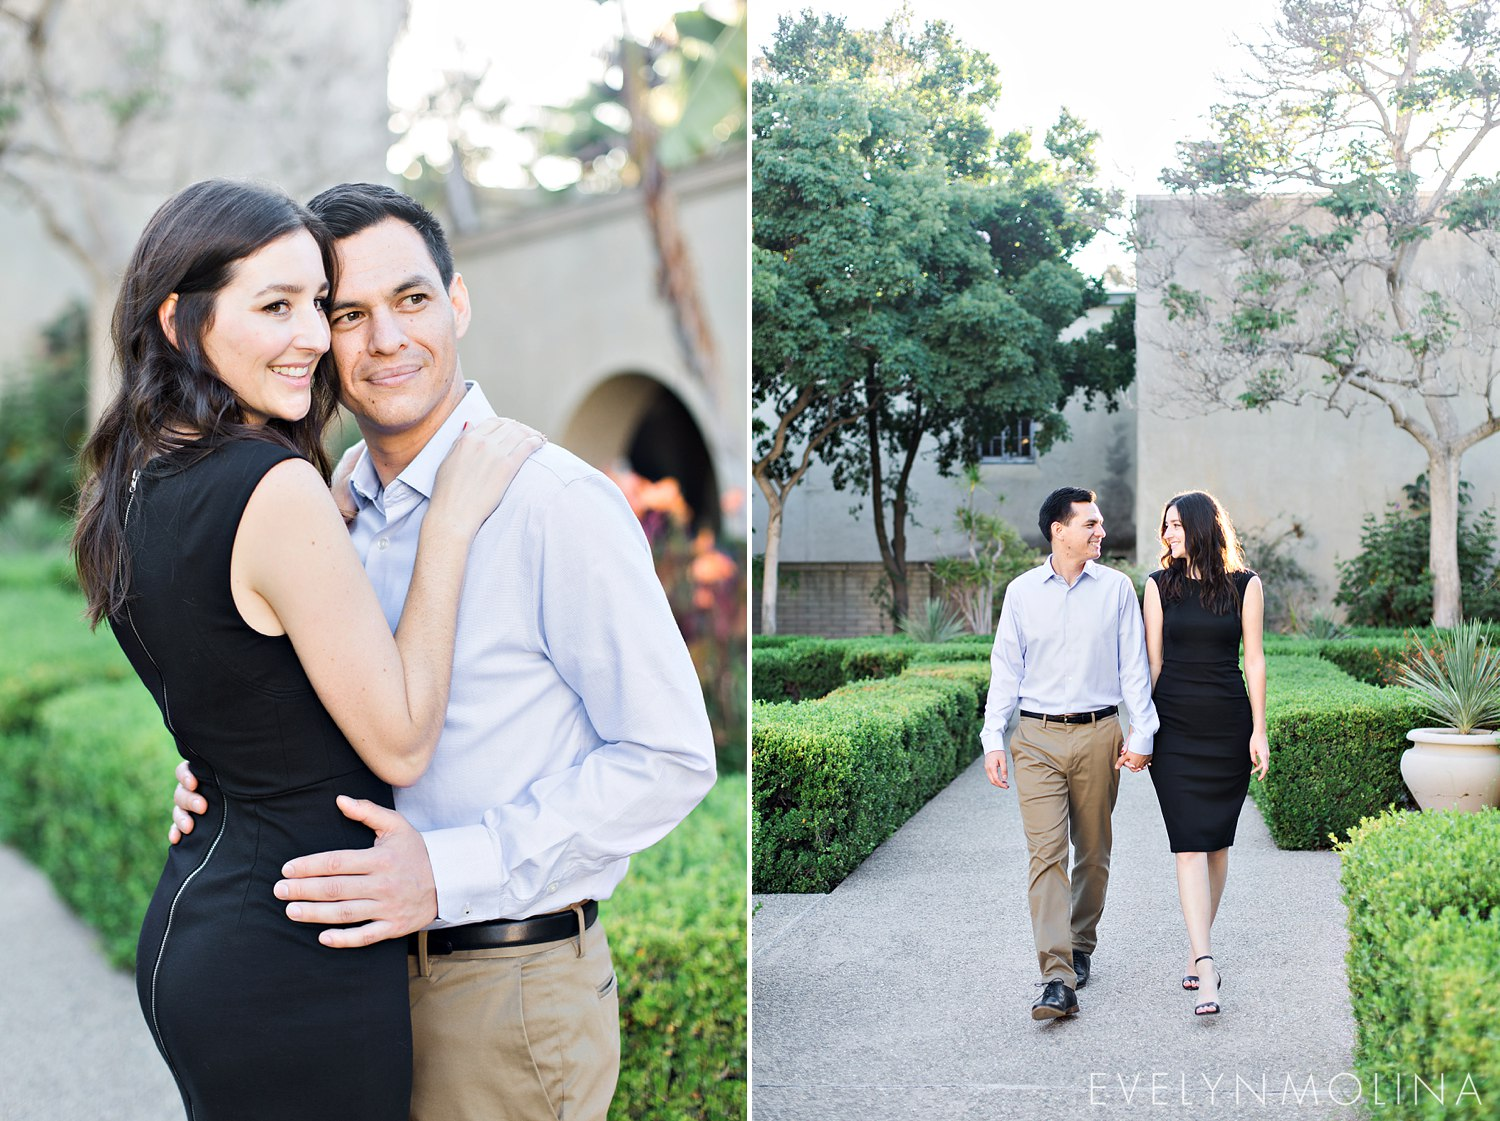 Balboa Park Engagement Session - Kristen and Justin_0010.jpg